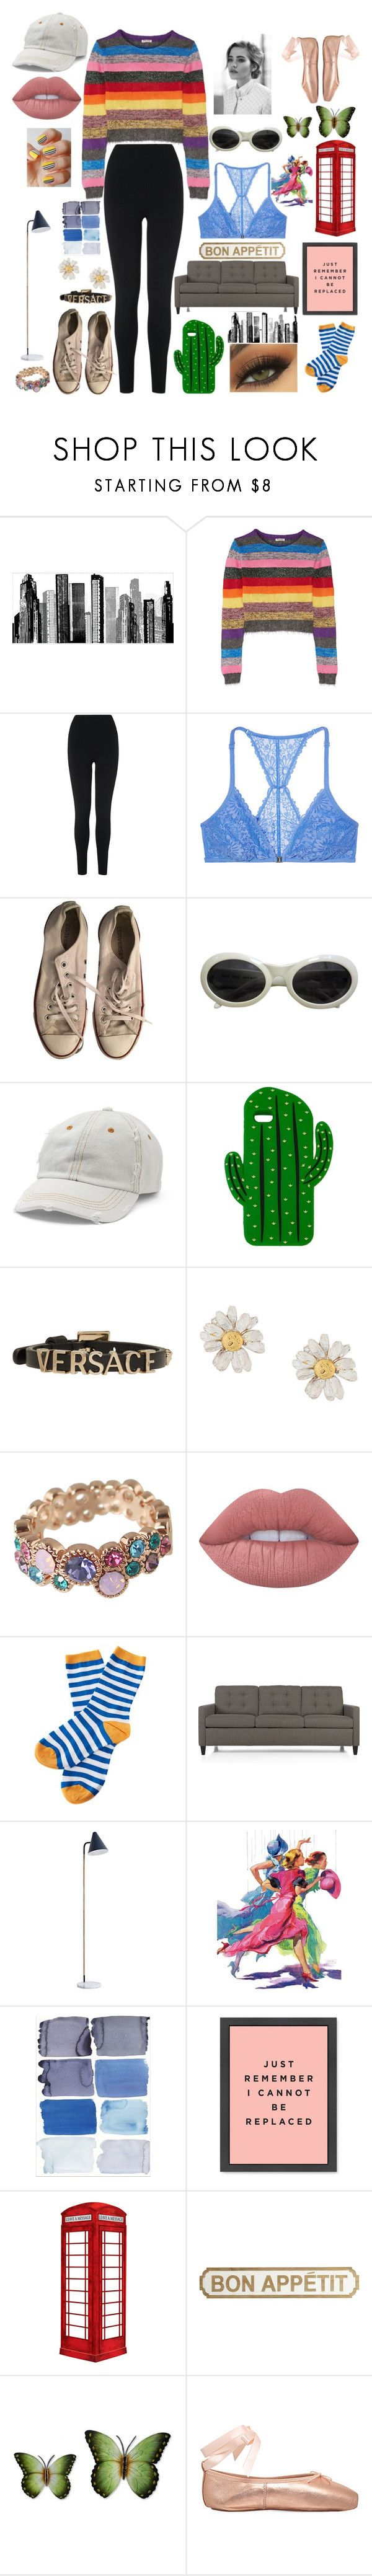 """Lights Out, Fun In"" by meisnatalia ❤ liked on Polyvore featuring RoomMates Decor, Miu Miu, L.K.Bennett, Victoria's Secret, Converse, Gucci, Mudd, Sarina, Versace and Alex Monroe"